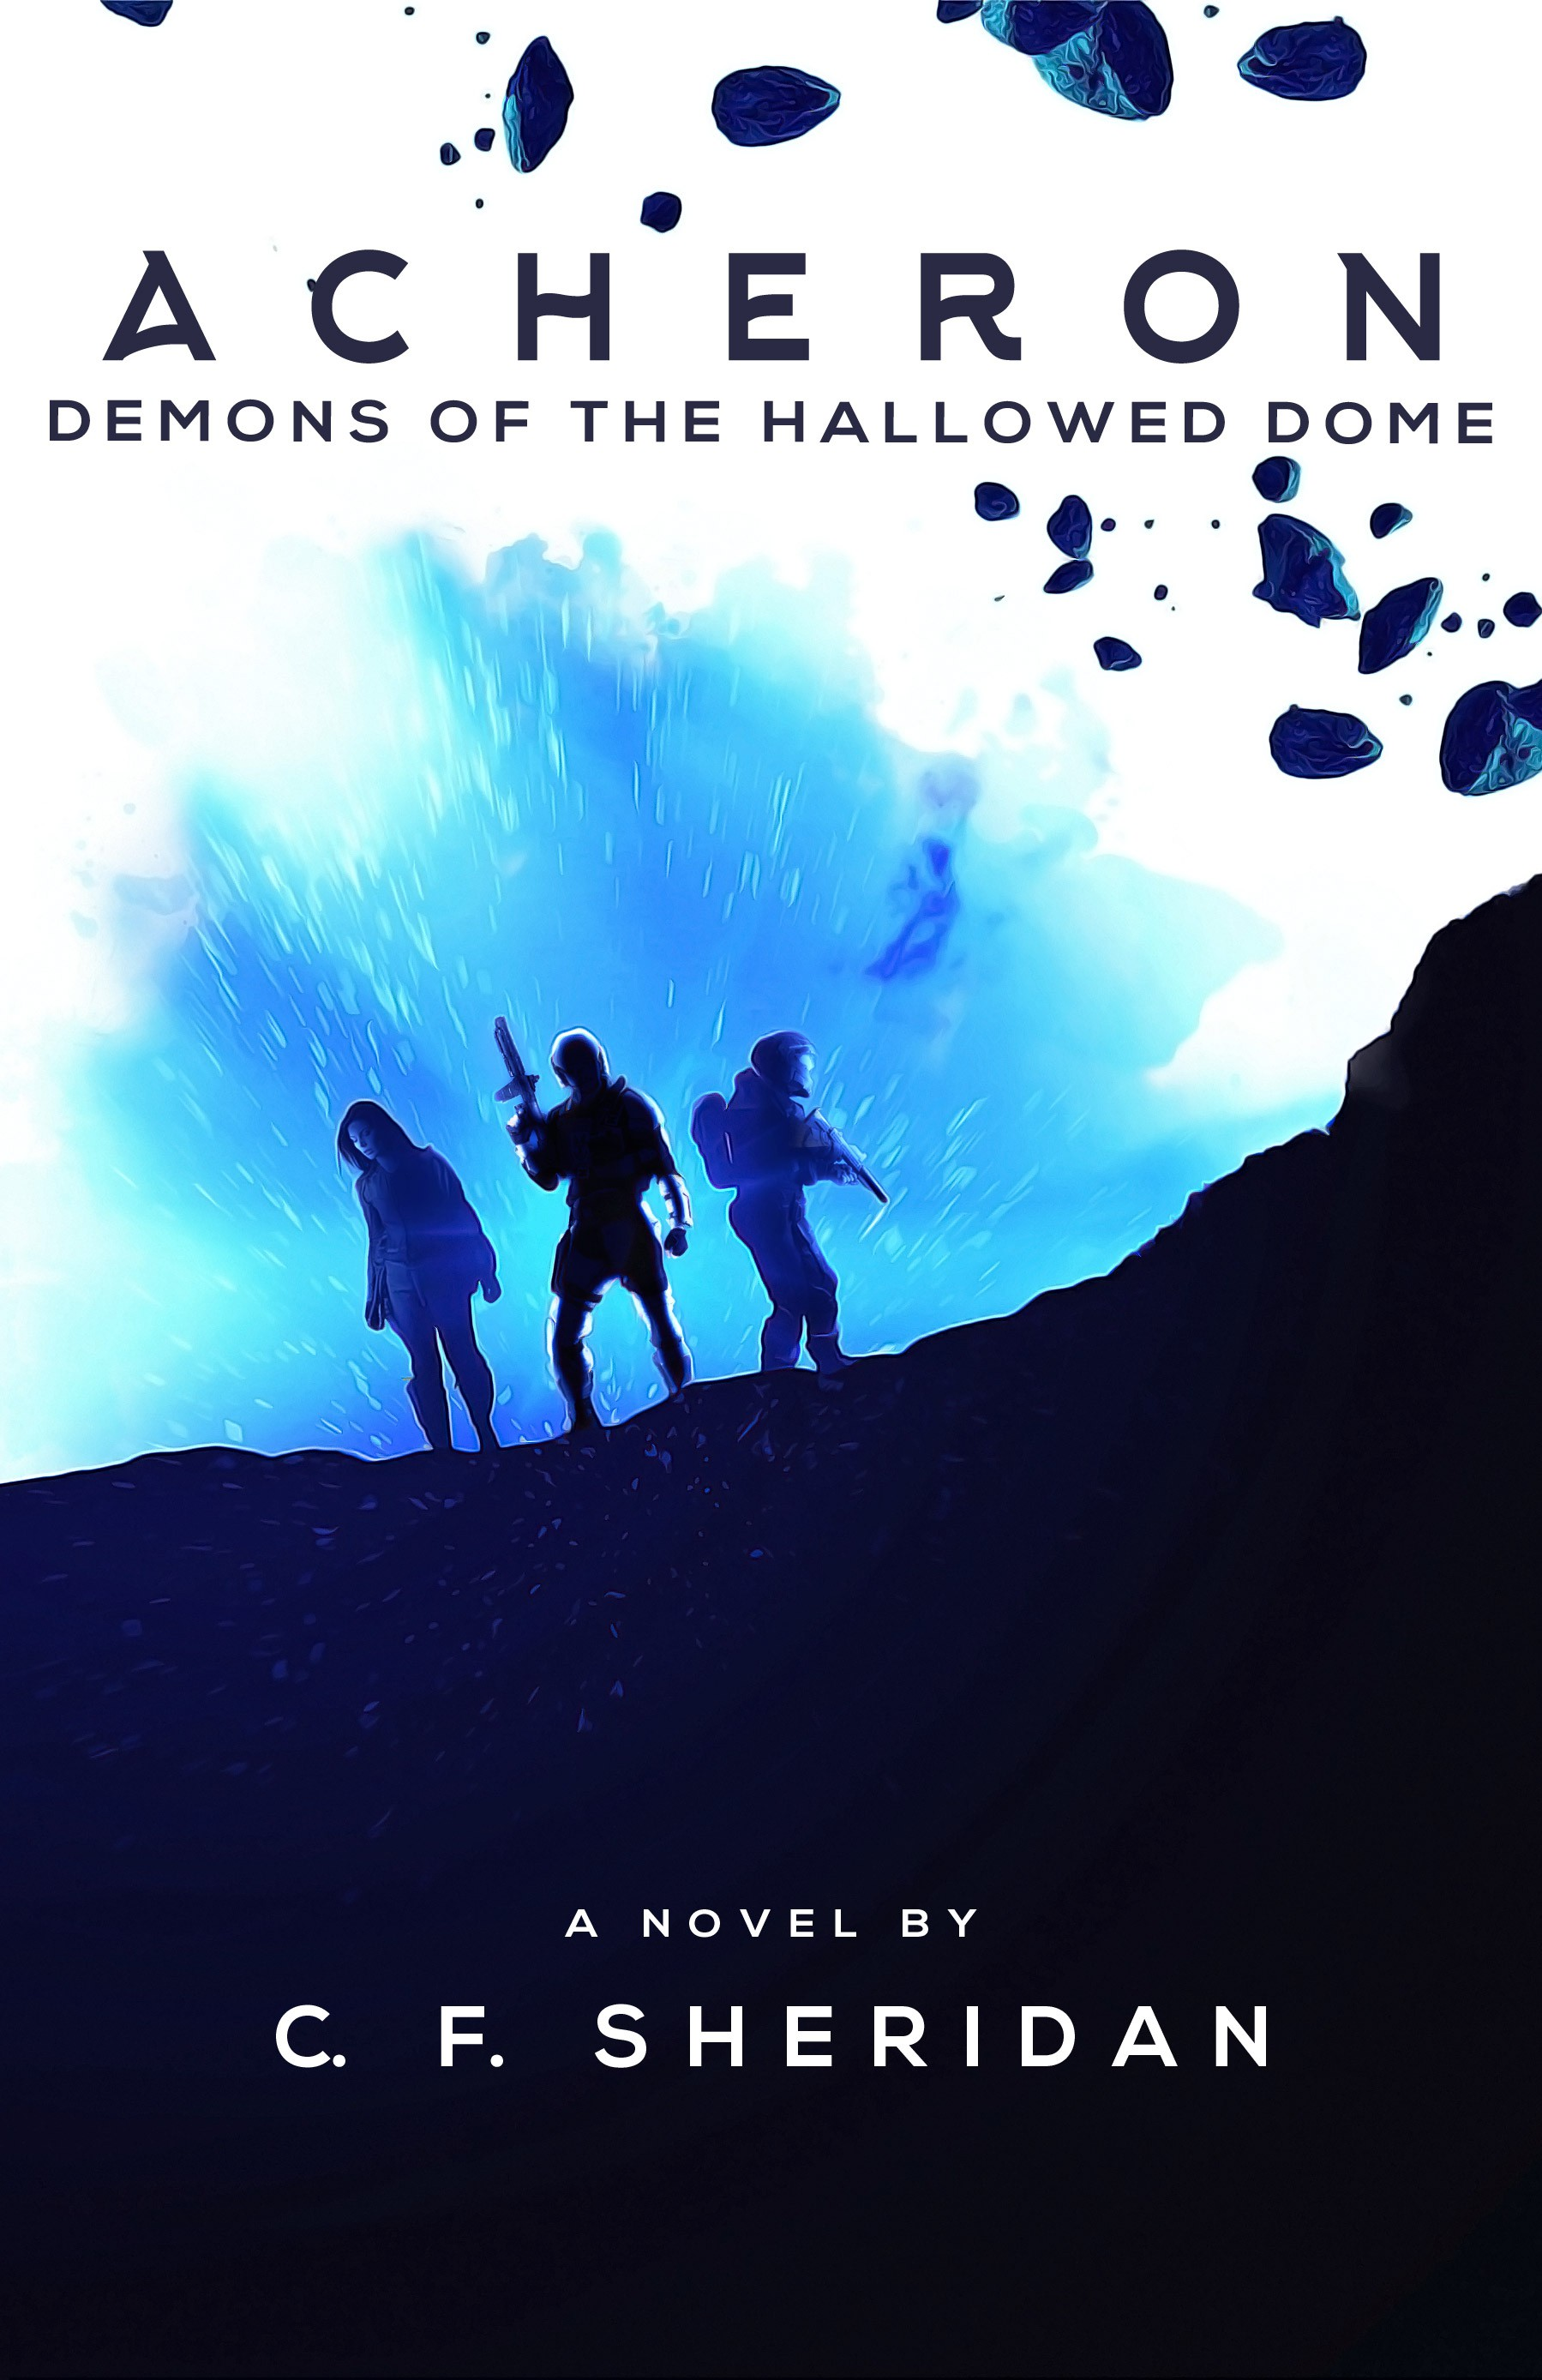 Create a sharp and stylish cover for a science fiction/space opera novel.